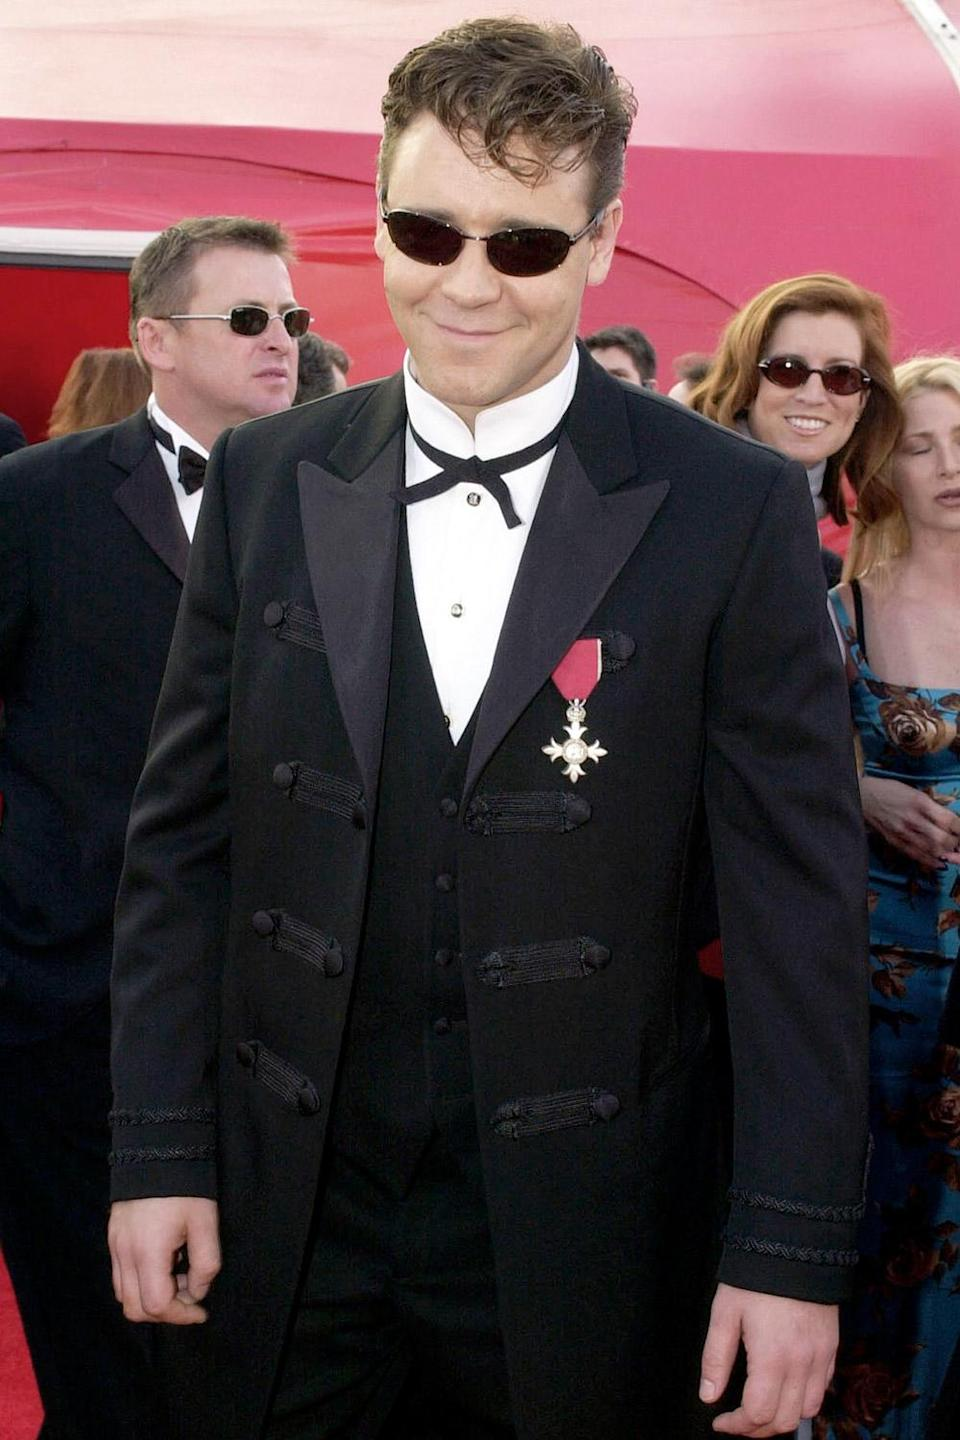 <p>Russell Crowe — who went home with the Oscar for Best Actor for his performance in <em>Gladiator —</em> arrived at the 2001 Oscars wearing some creative accessories.</p>